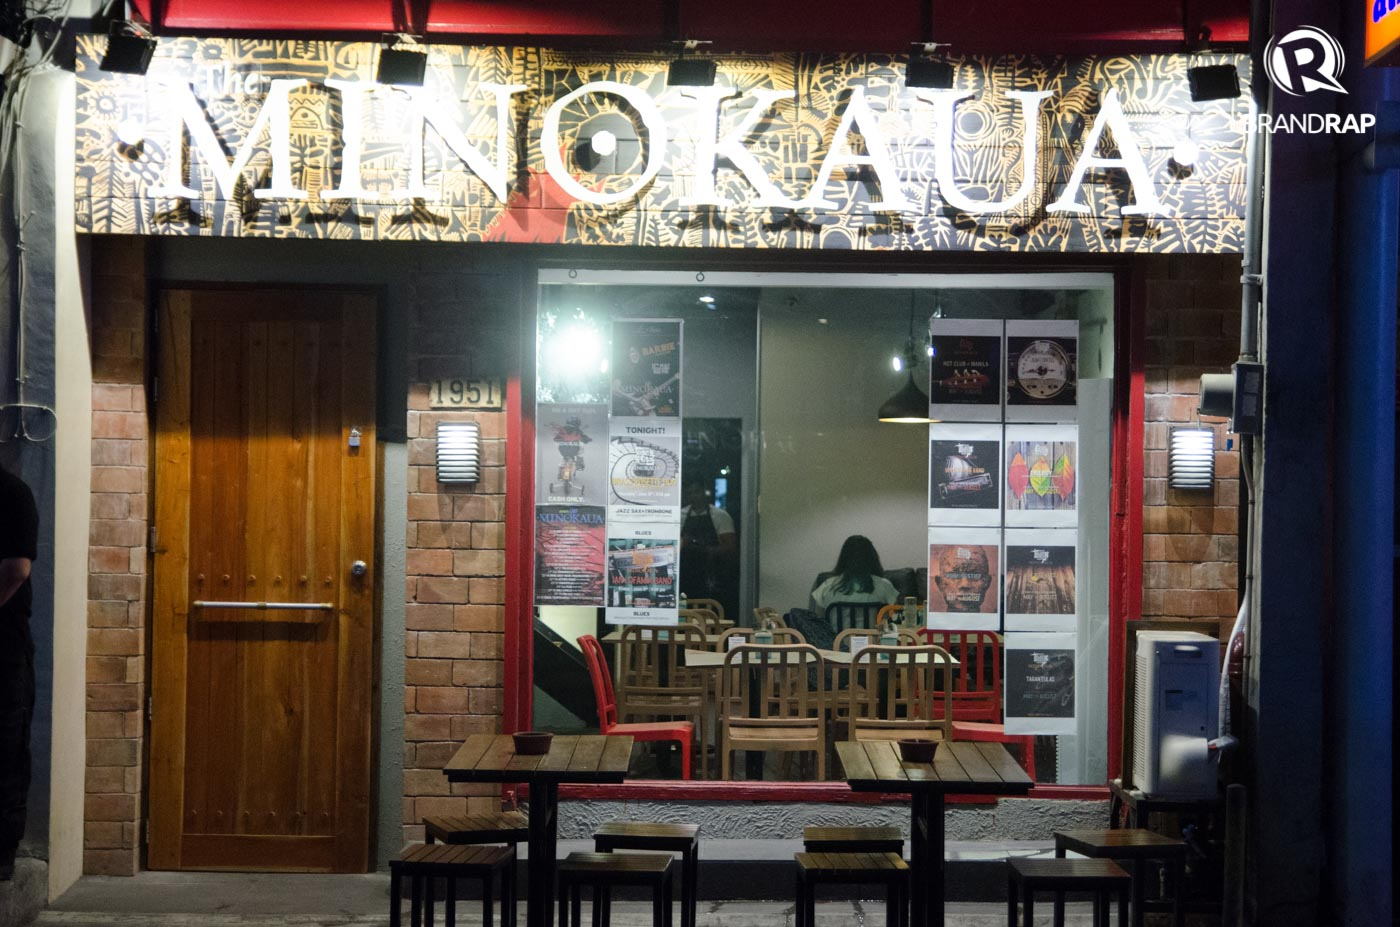 CREATIVE SPACE. Aside from offering good food and quality music, Minokaua hopes to revive Malateu2019s art scene. Photo by Pauee Cadaing/Rappler